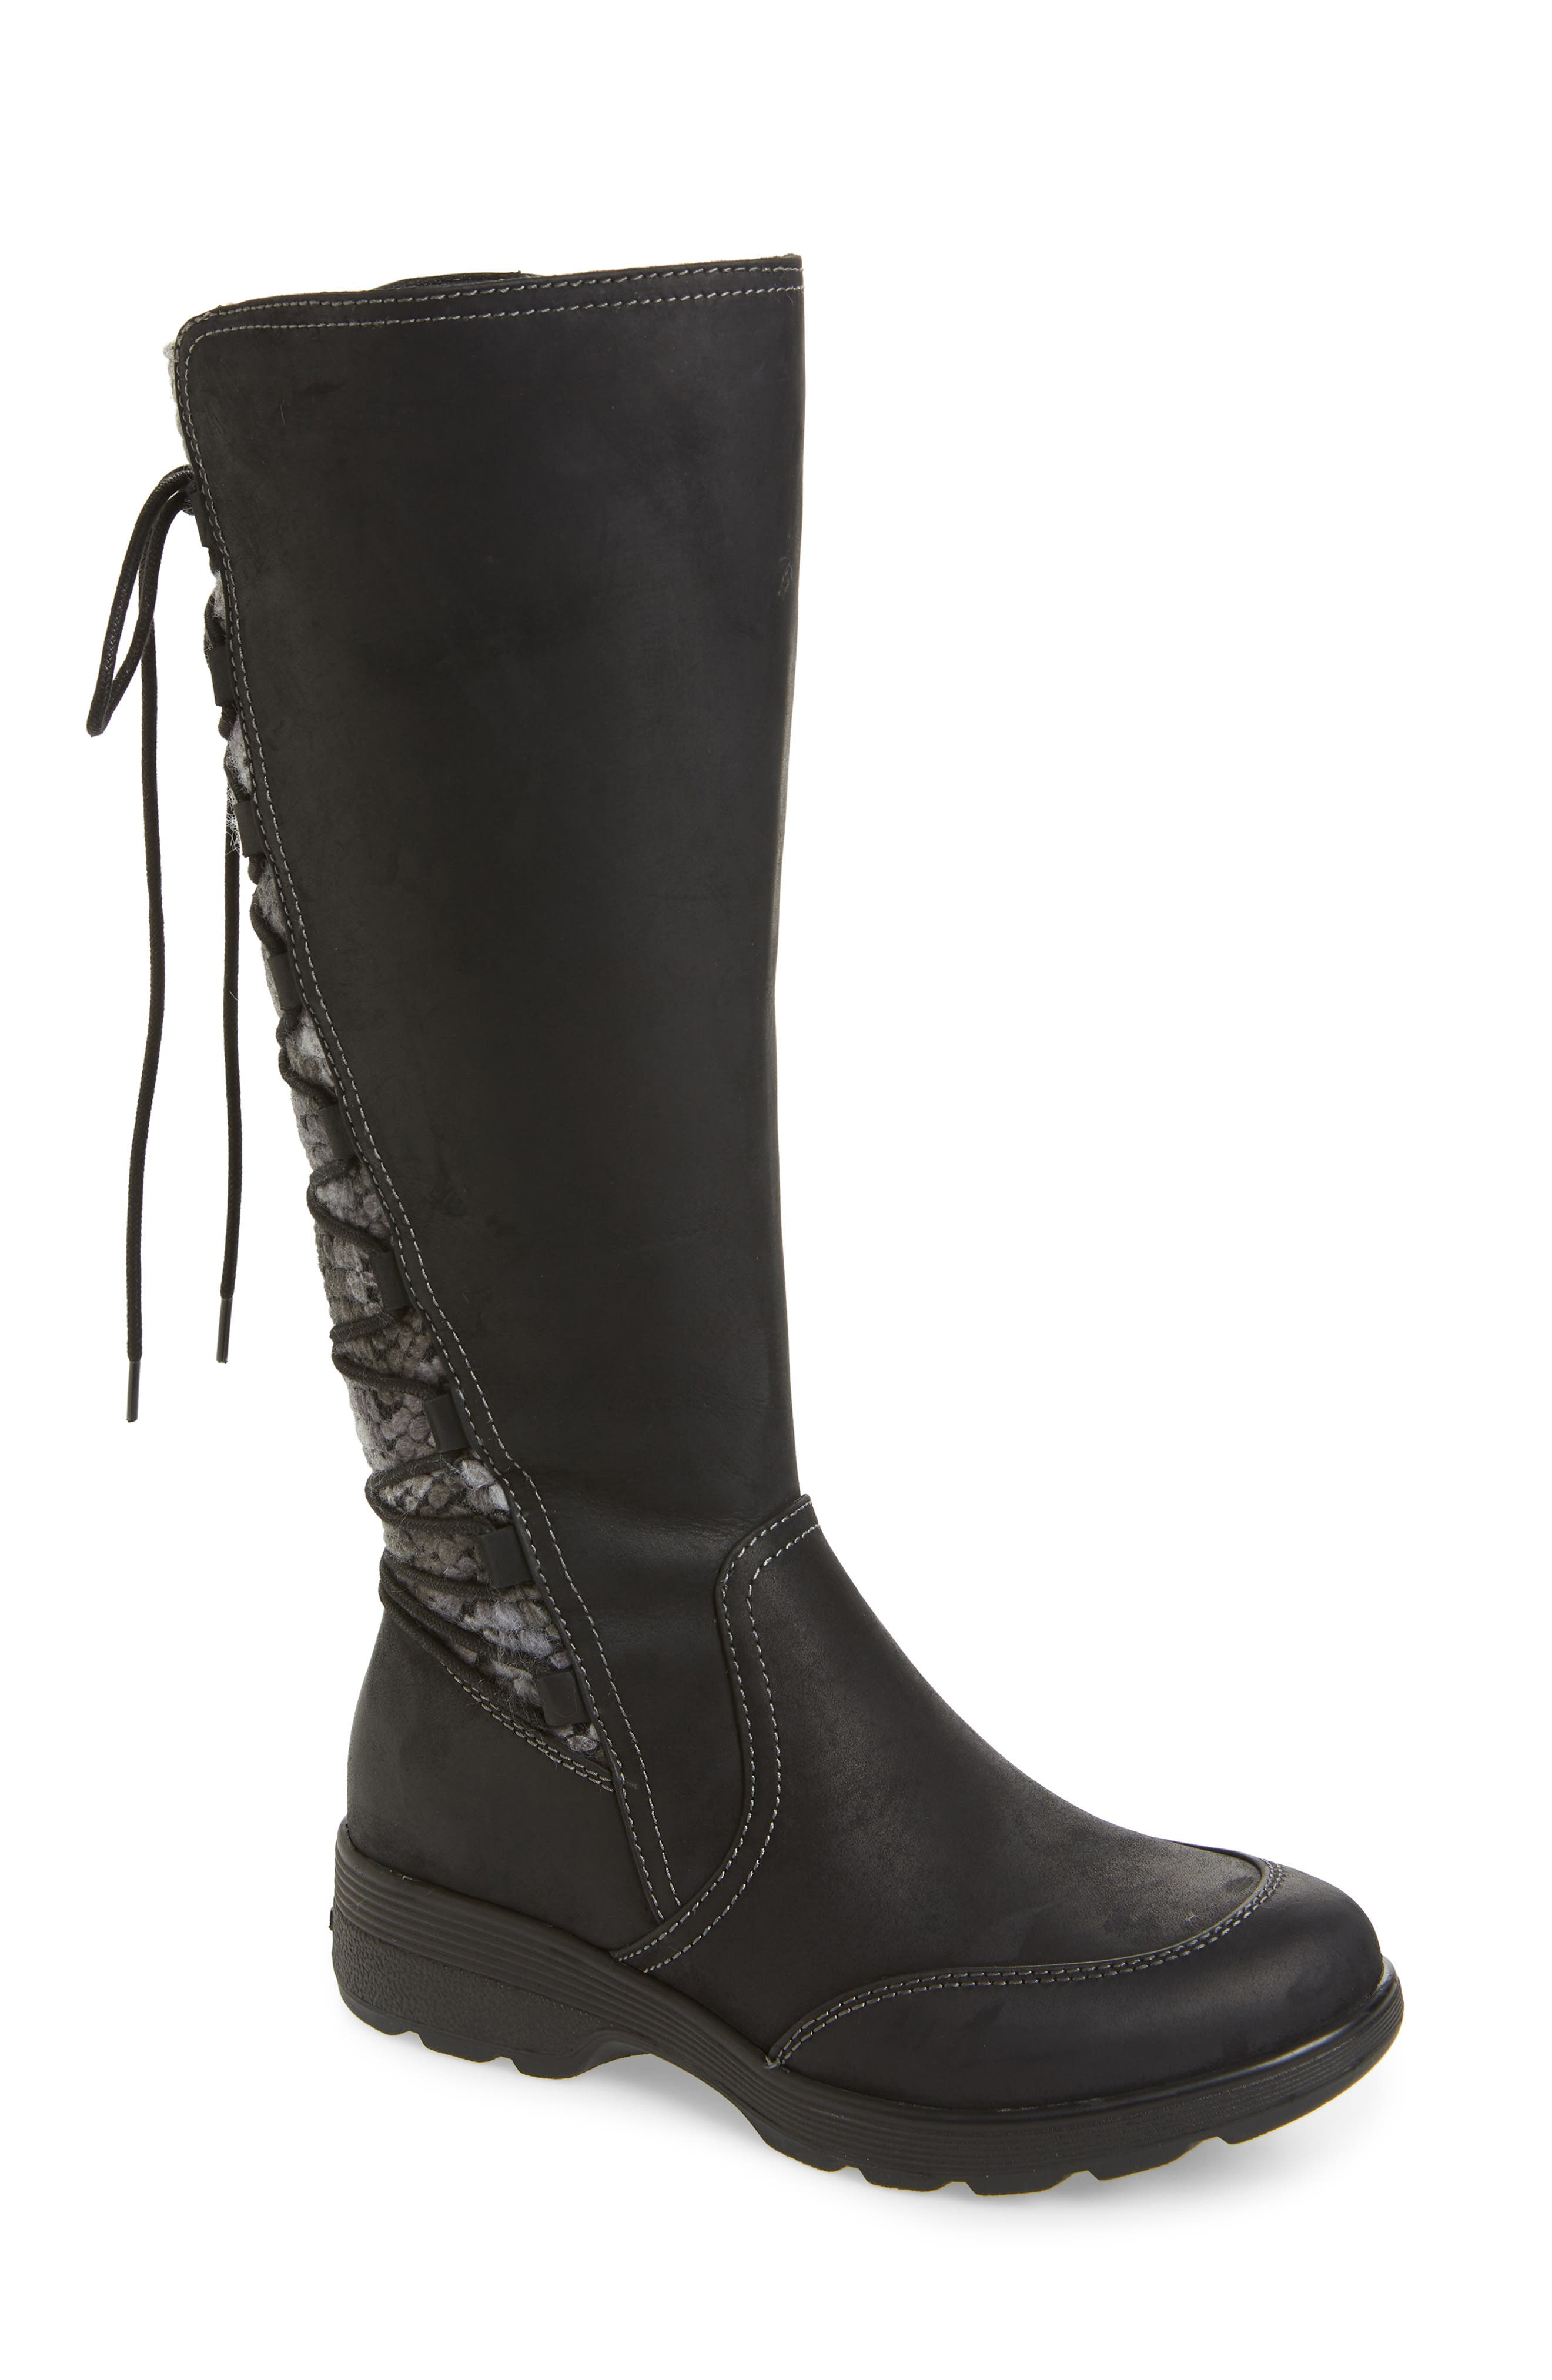 Epping Waterproof Knee High Boot, Main, color, BLACK LEATHER